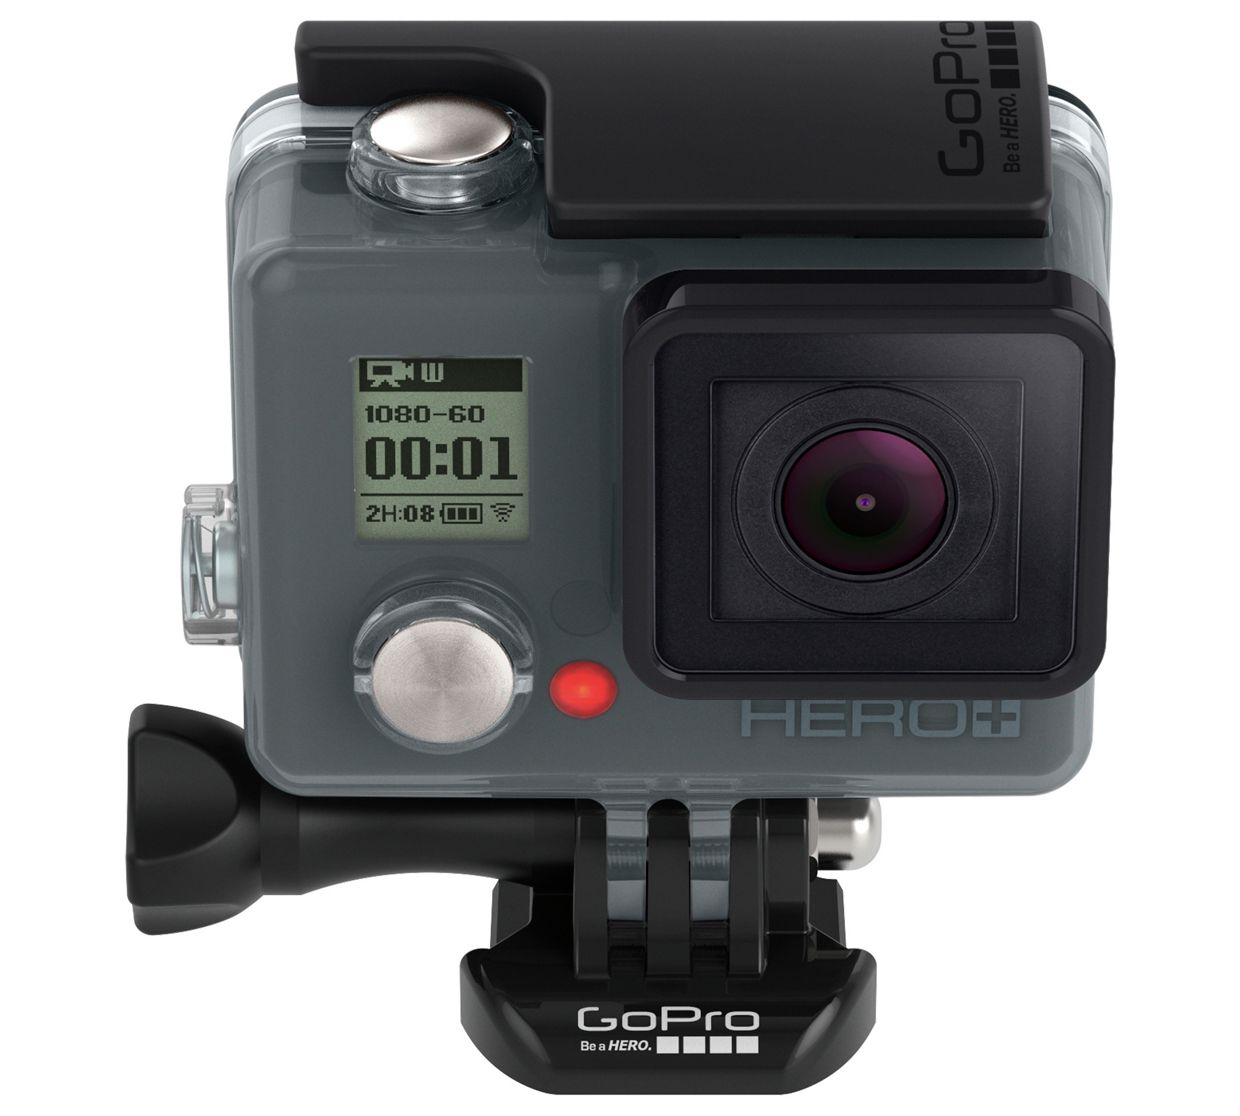 Best Gopro Black Friday Deals And Discounts Hero Hd Action Camera Argos Is Selling The Lcd At 100 Below Recommended Retail Price